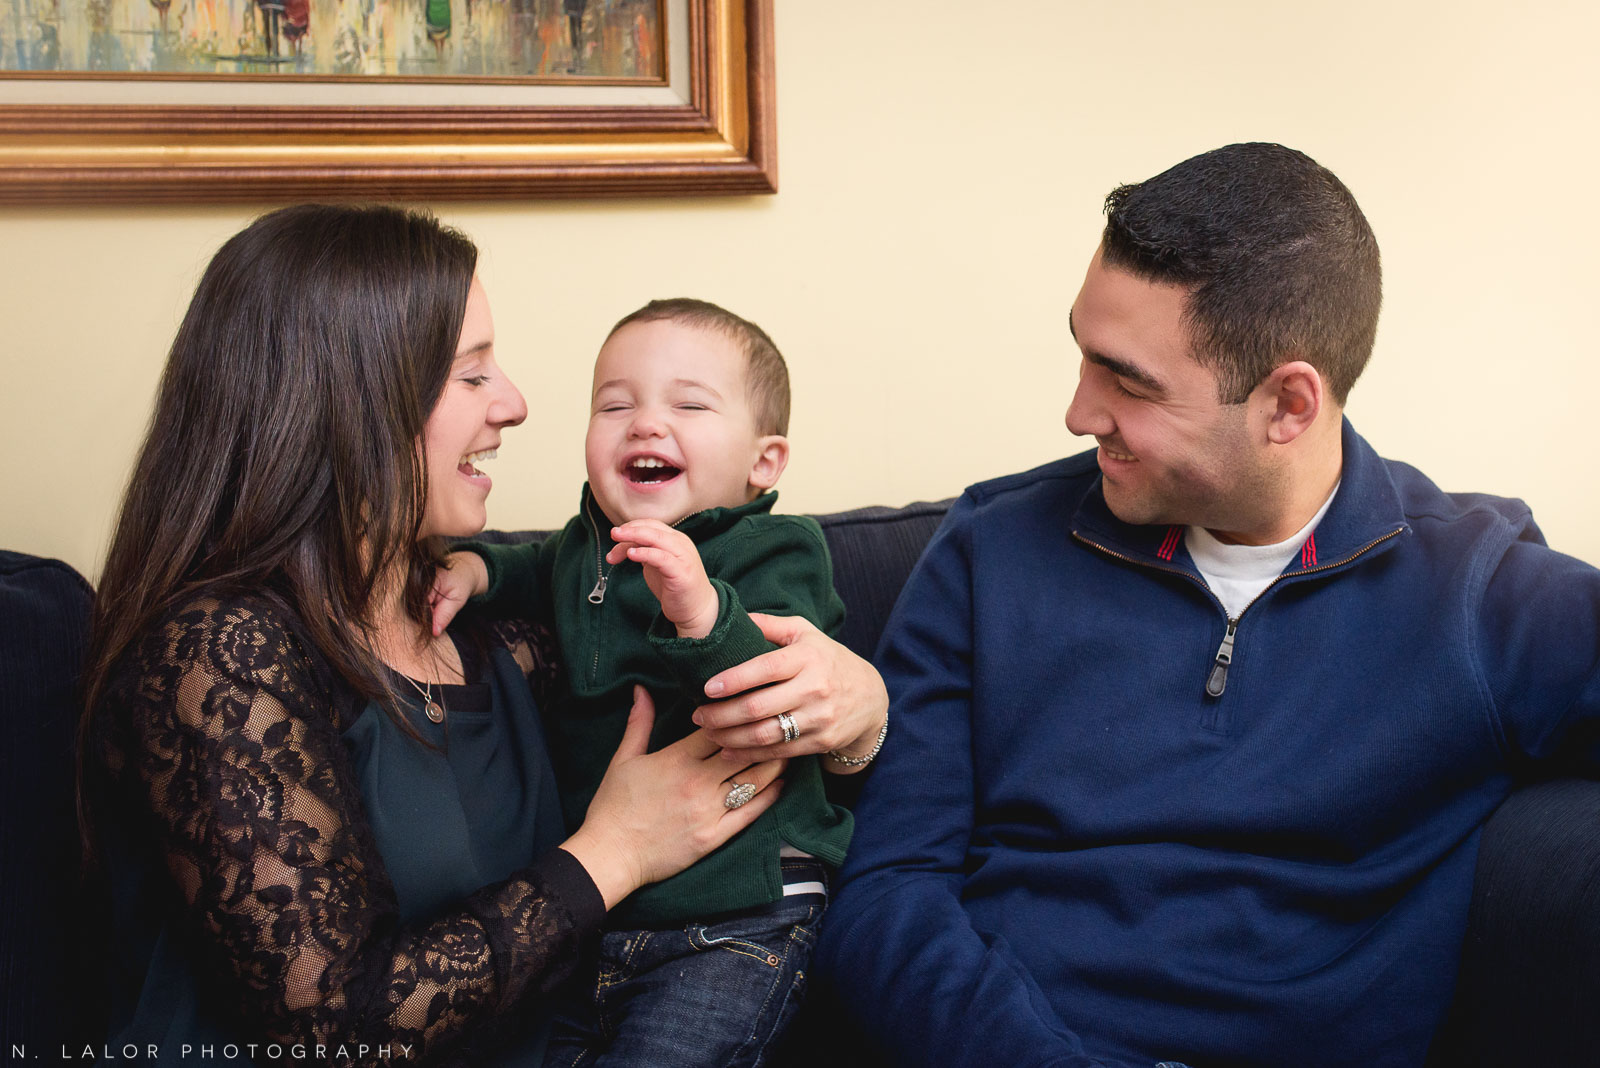 Family laughing together. Joyful lifestyle portrait by N. Lalor Photography.